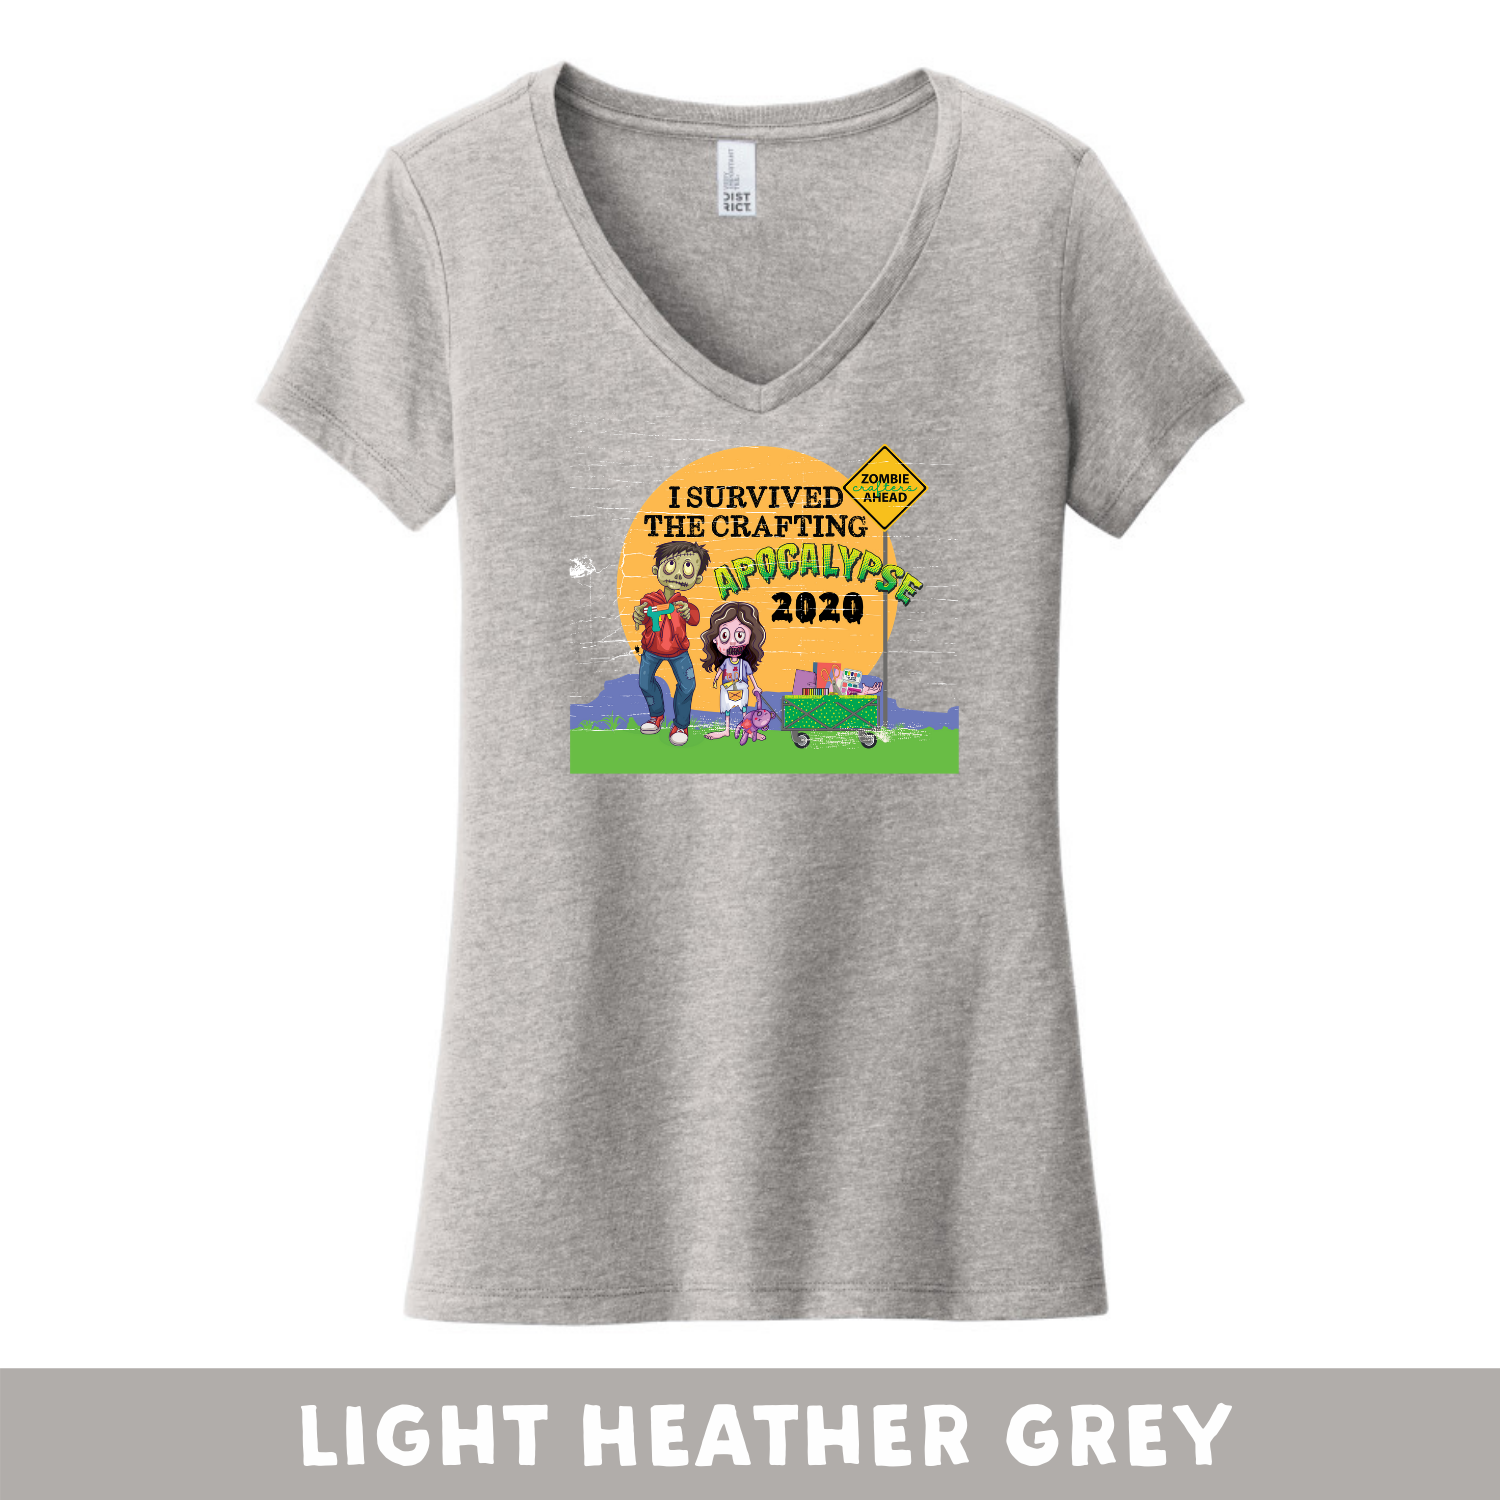 Light Heather Grey - Woman's Cut V-Neck - Heathered & Frosts - I Survived The 2020 Crafting Apocalypse